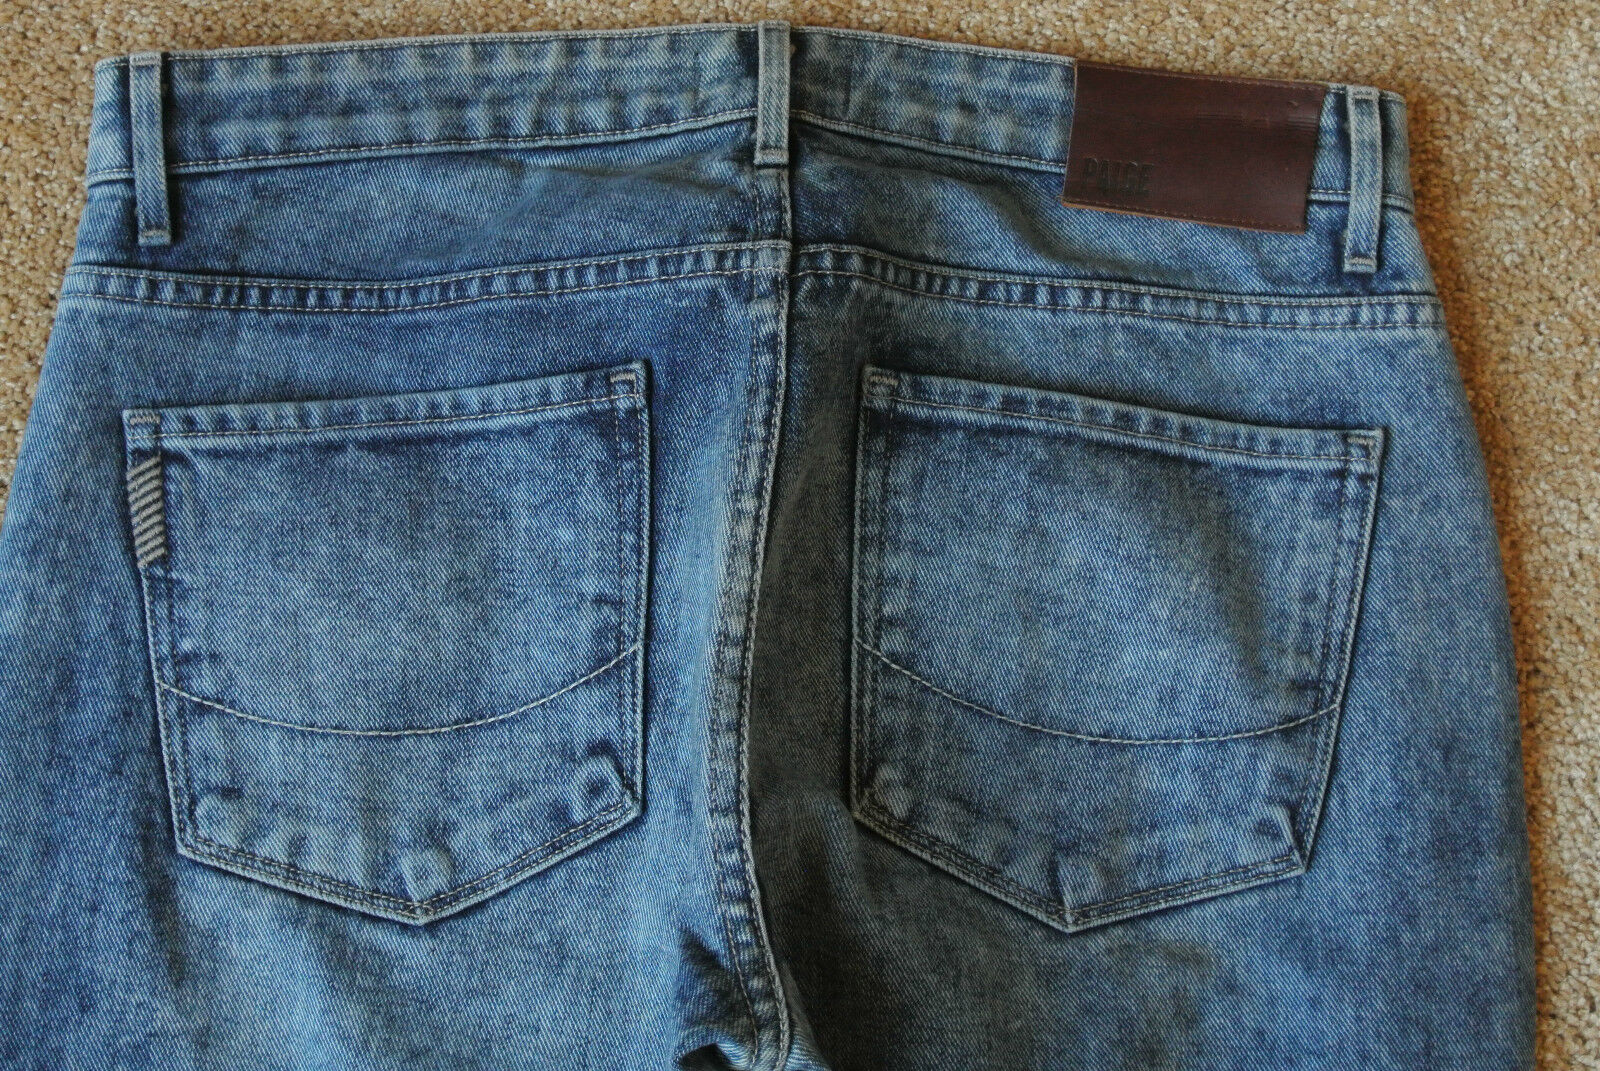 PAIGE PREMIUM DENIM PPD Jeans 31X34 NWOT DOHENY Straight- Distressed-SPIKE